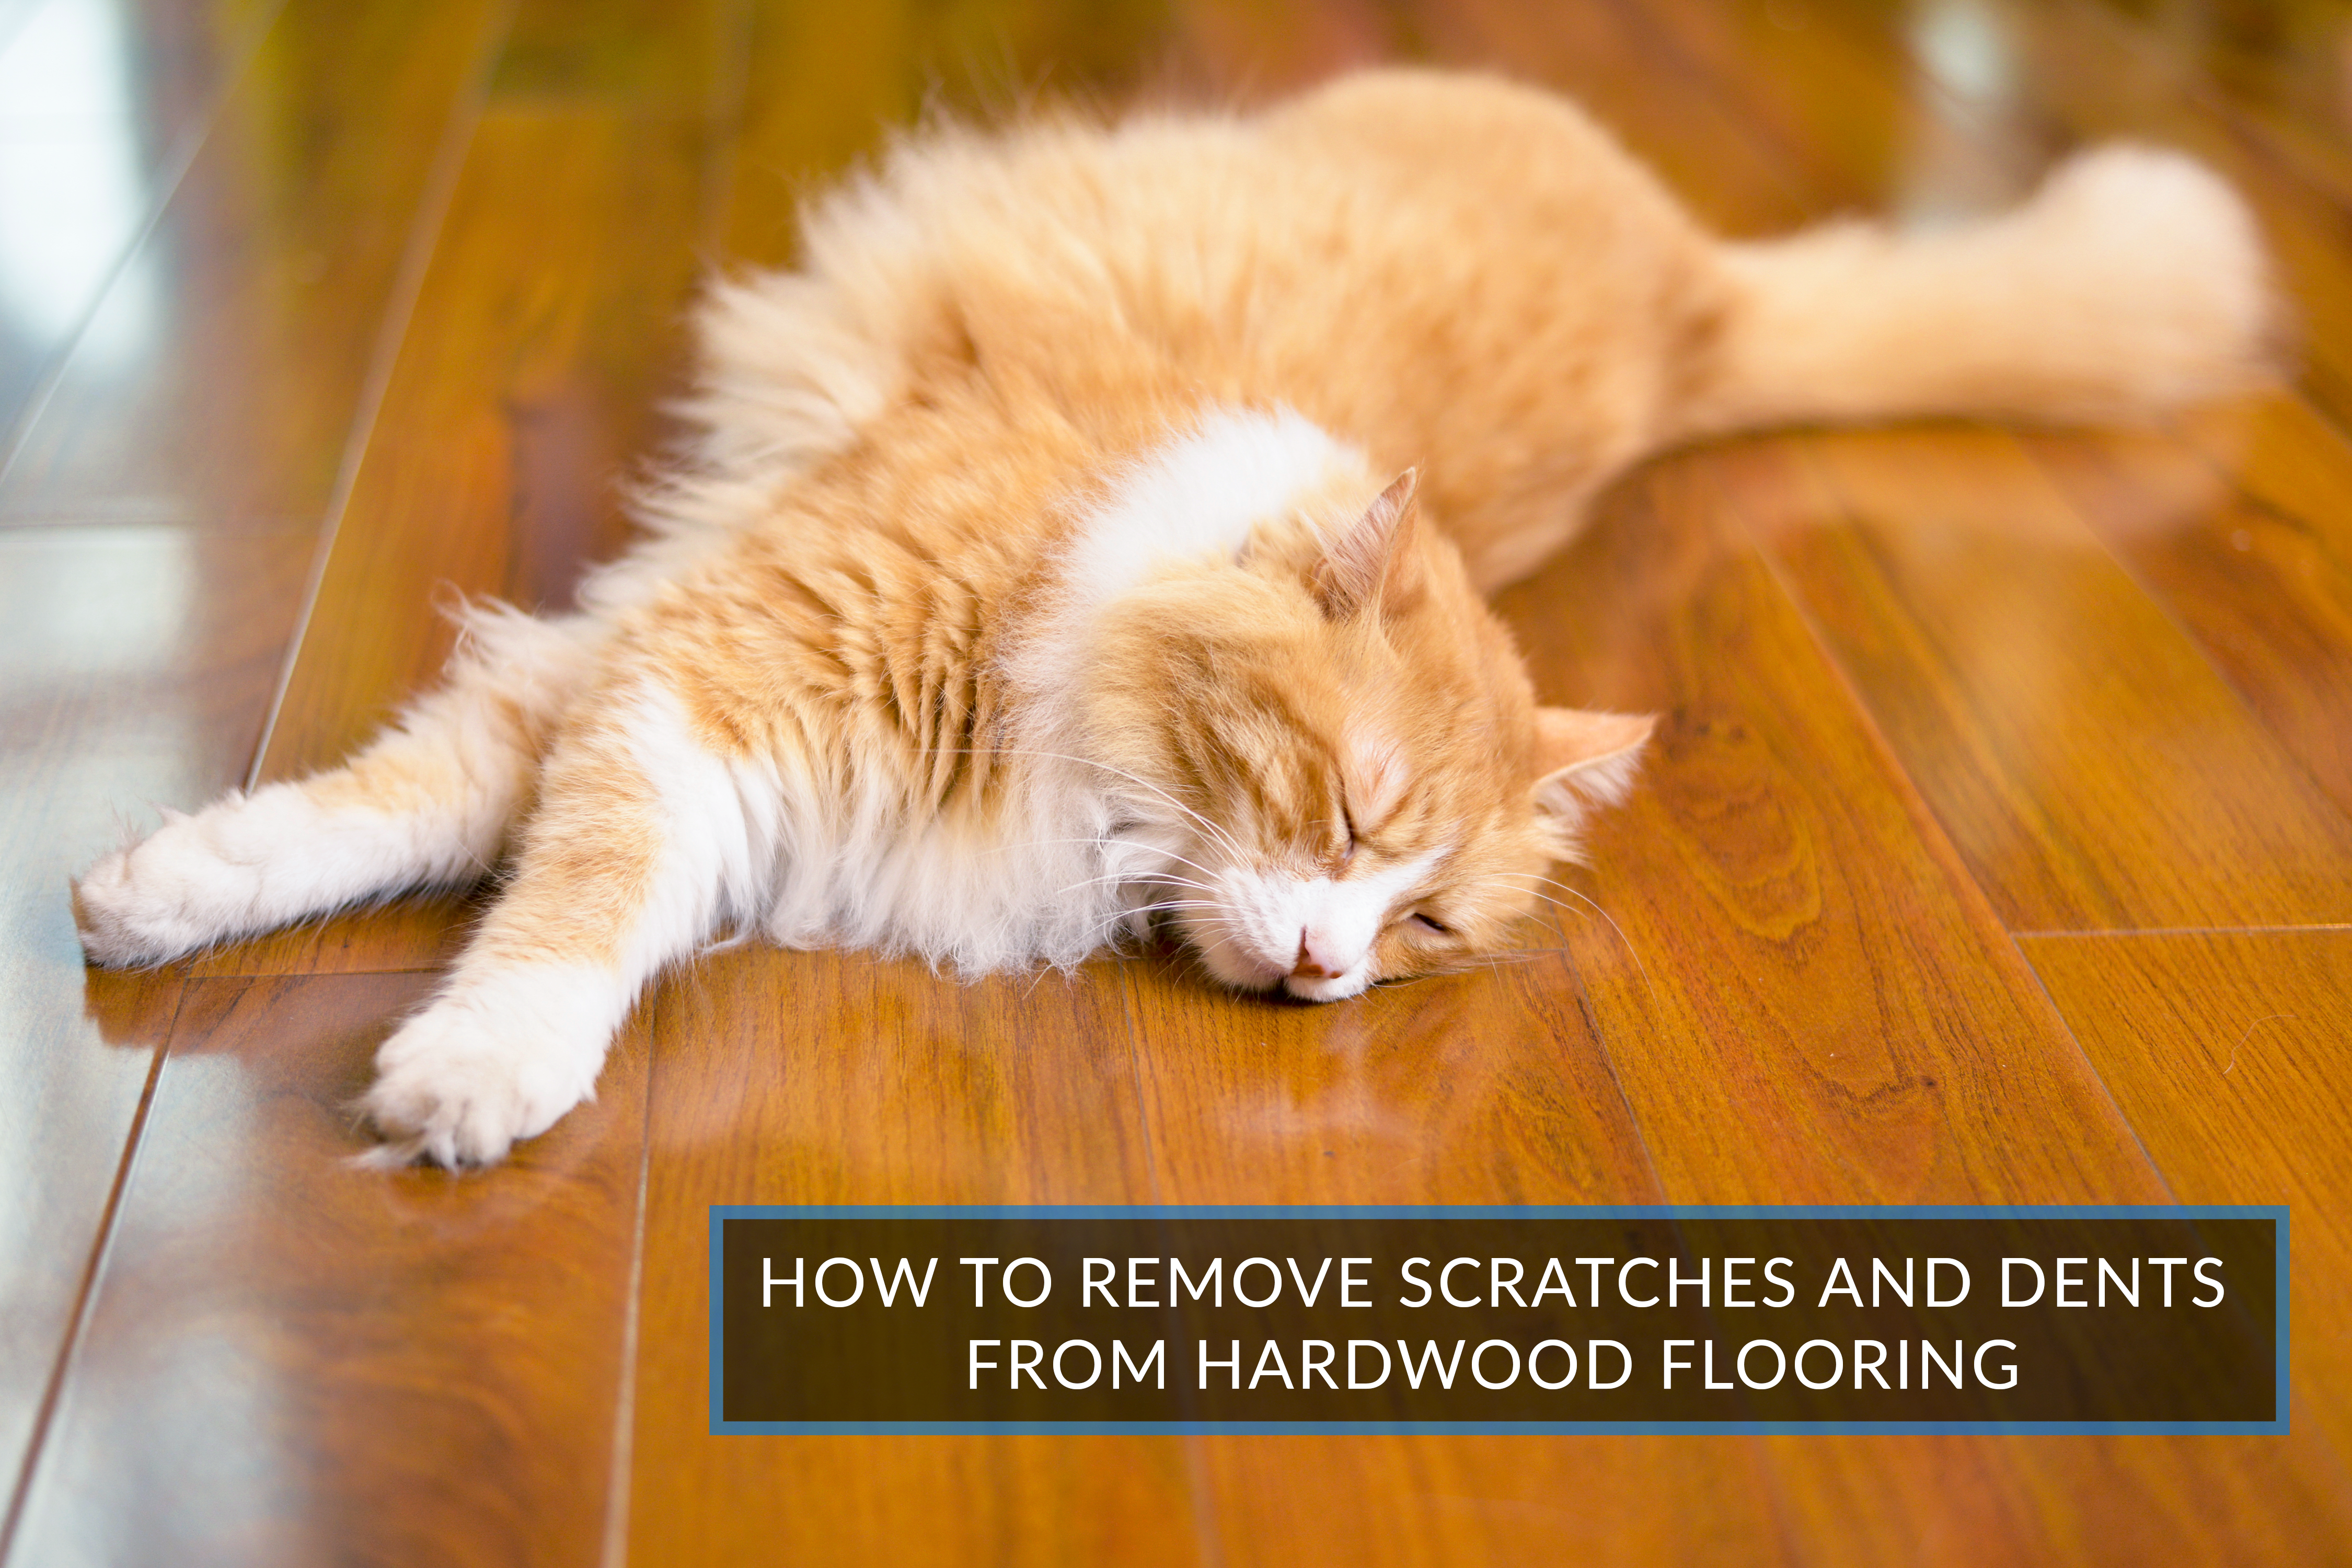 Removing Scratches And Dents From Hardwood Floors - Lift off floor removal